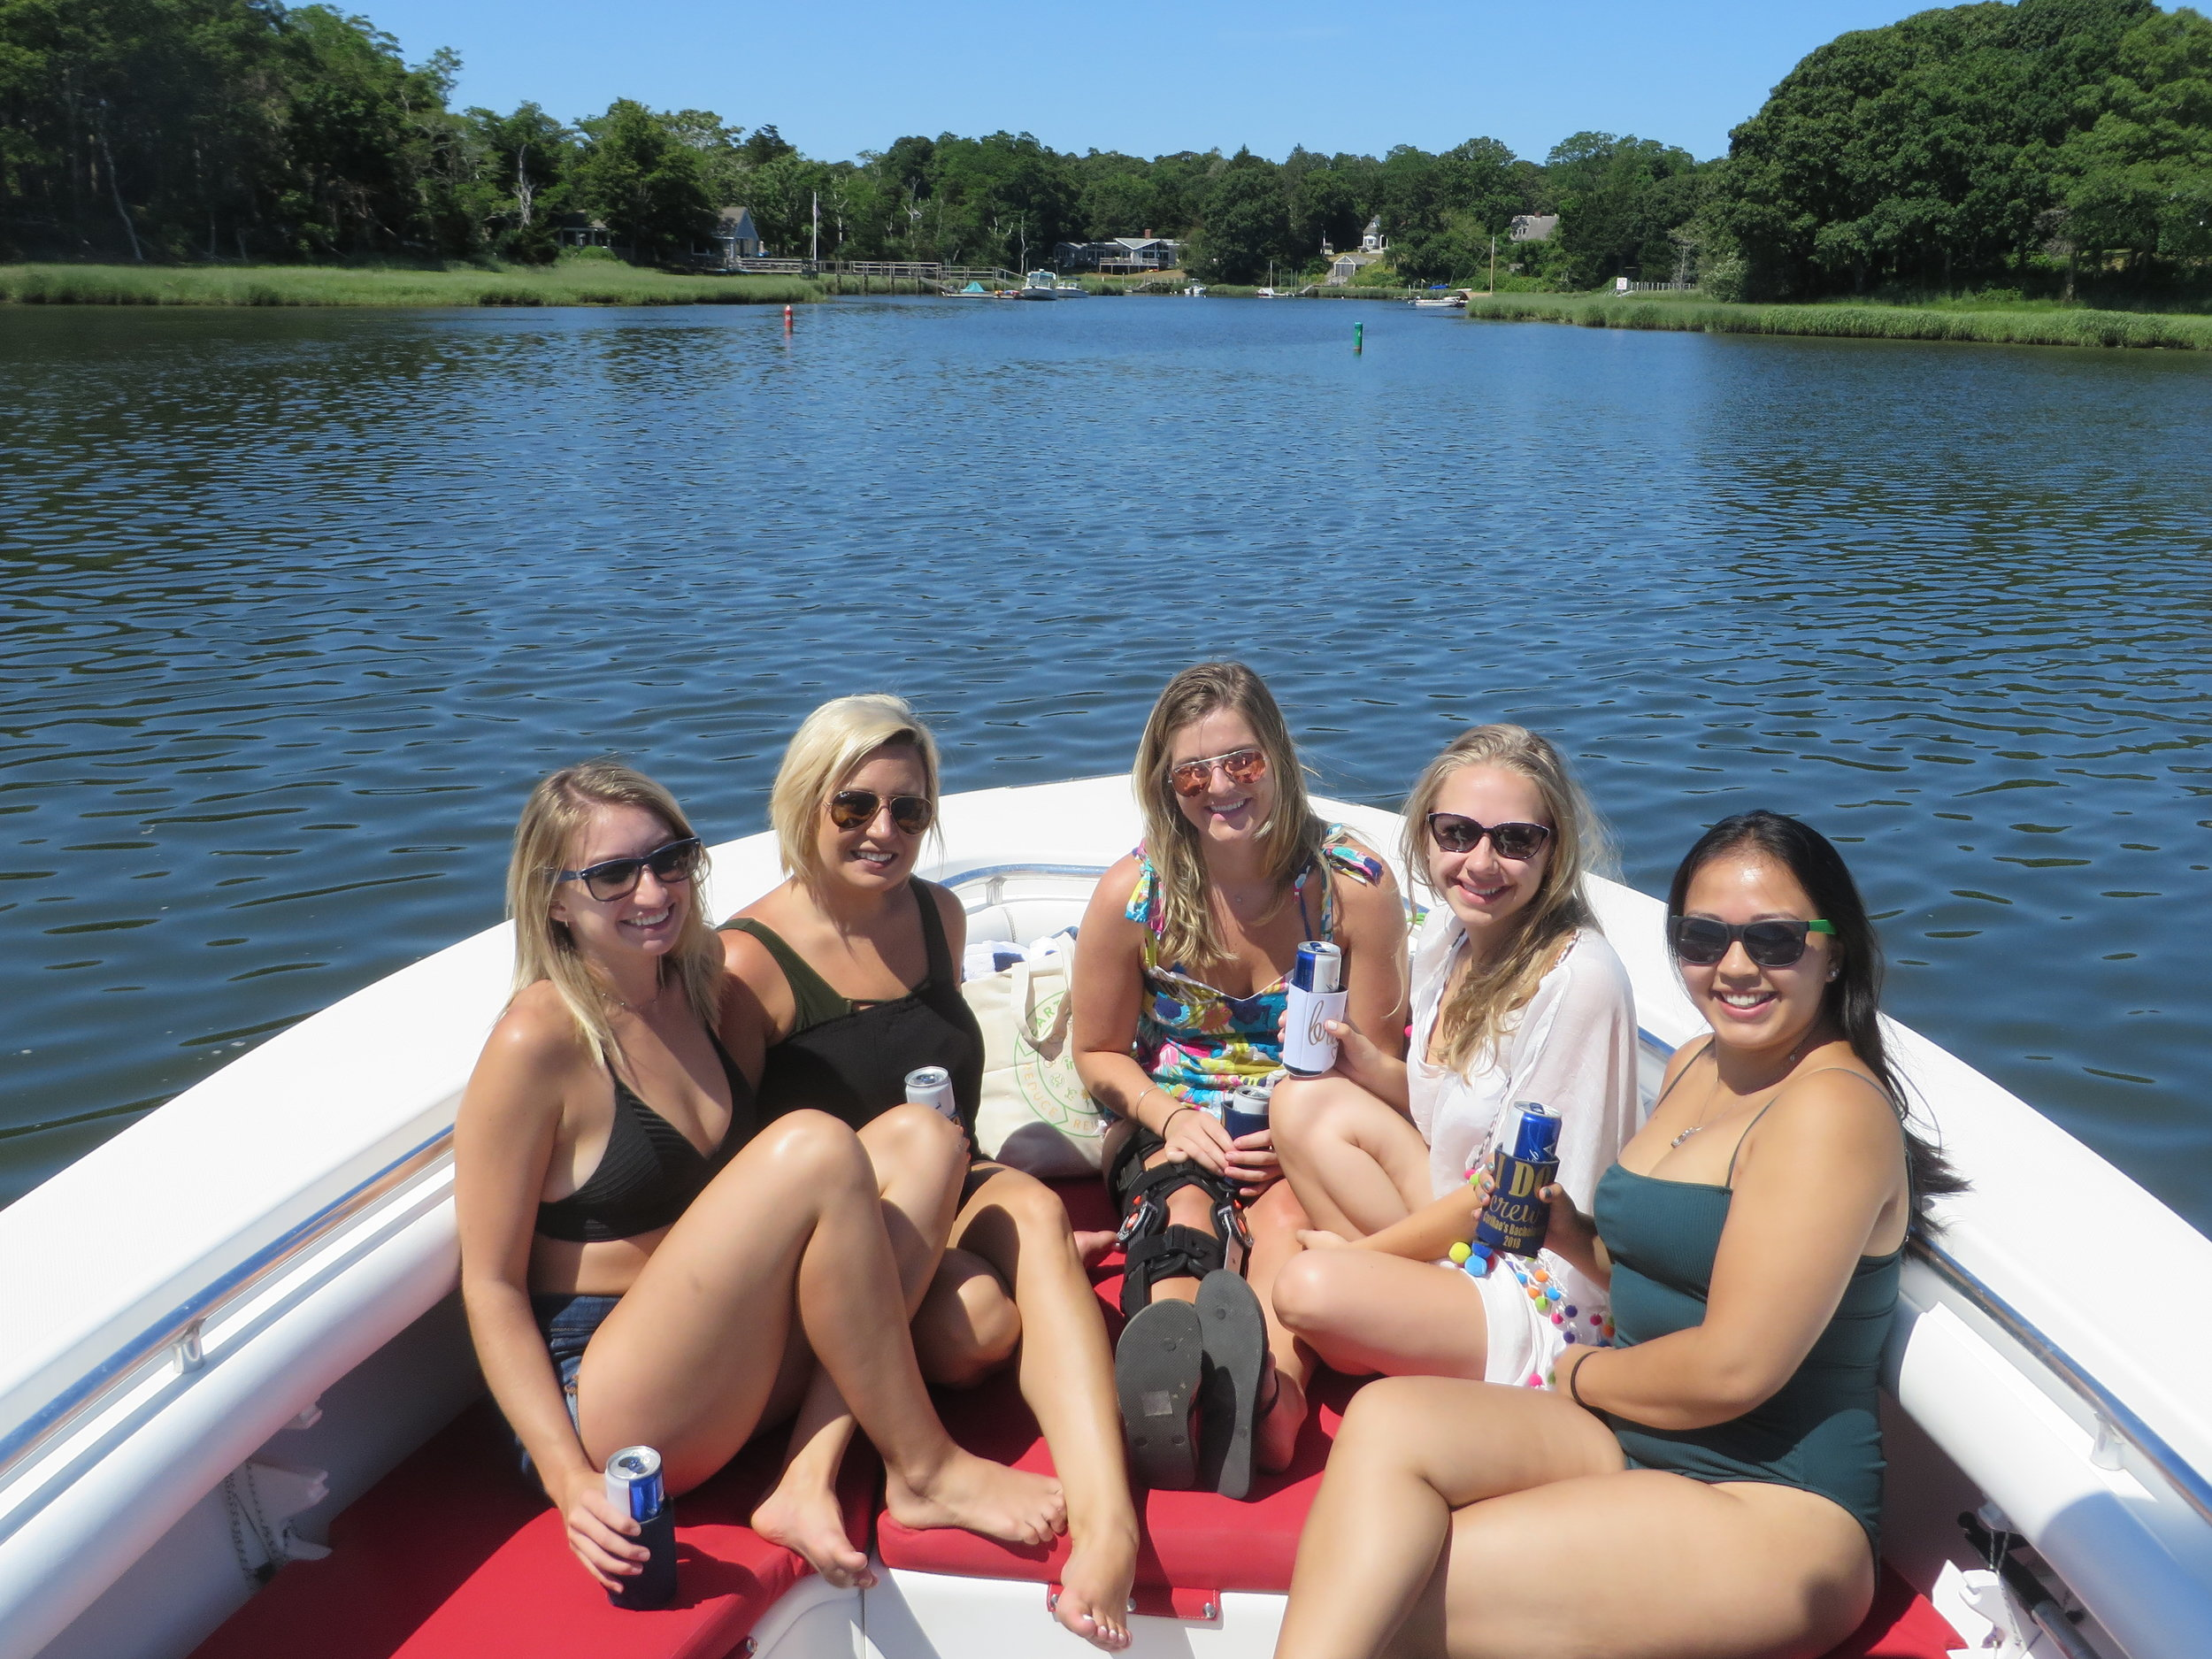 Julia and friends enjoy a perfect bachelorette get together.